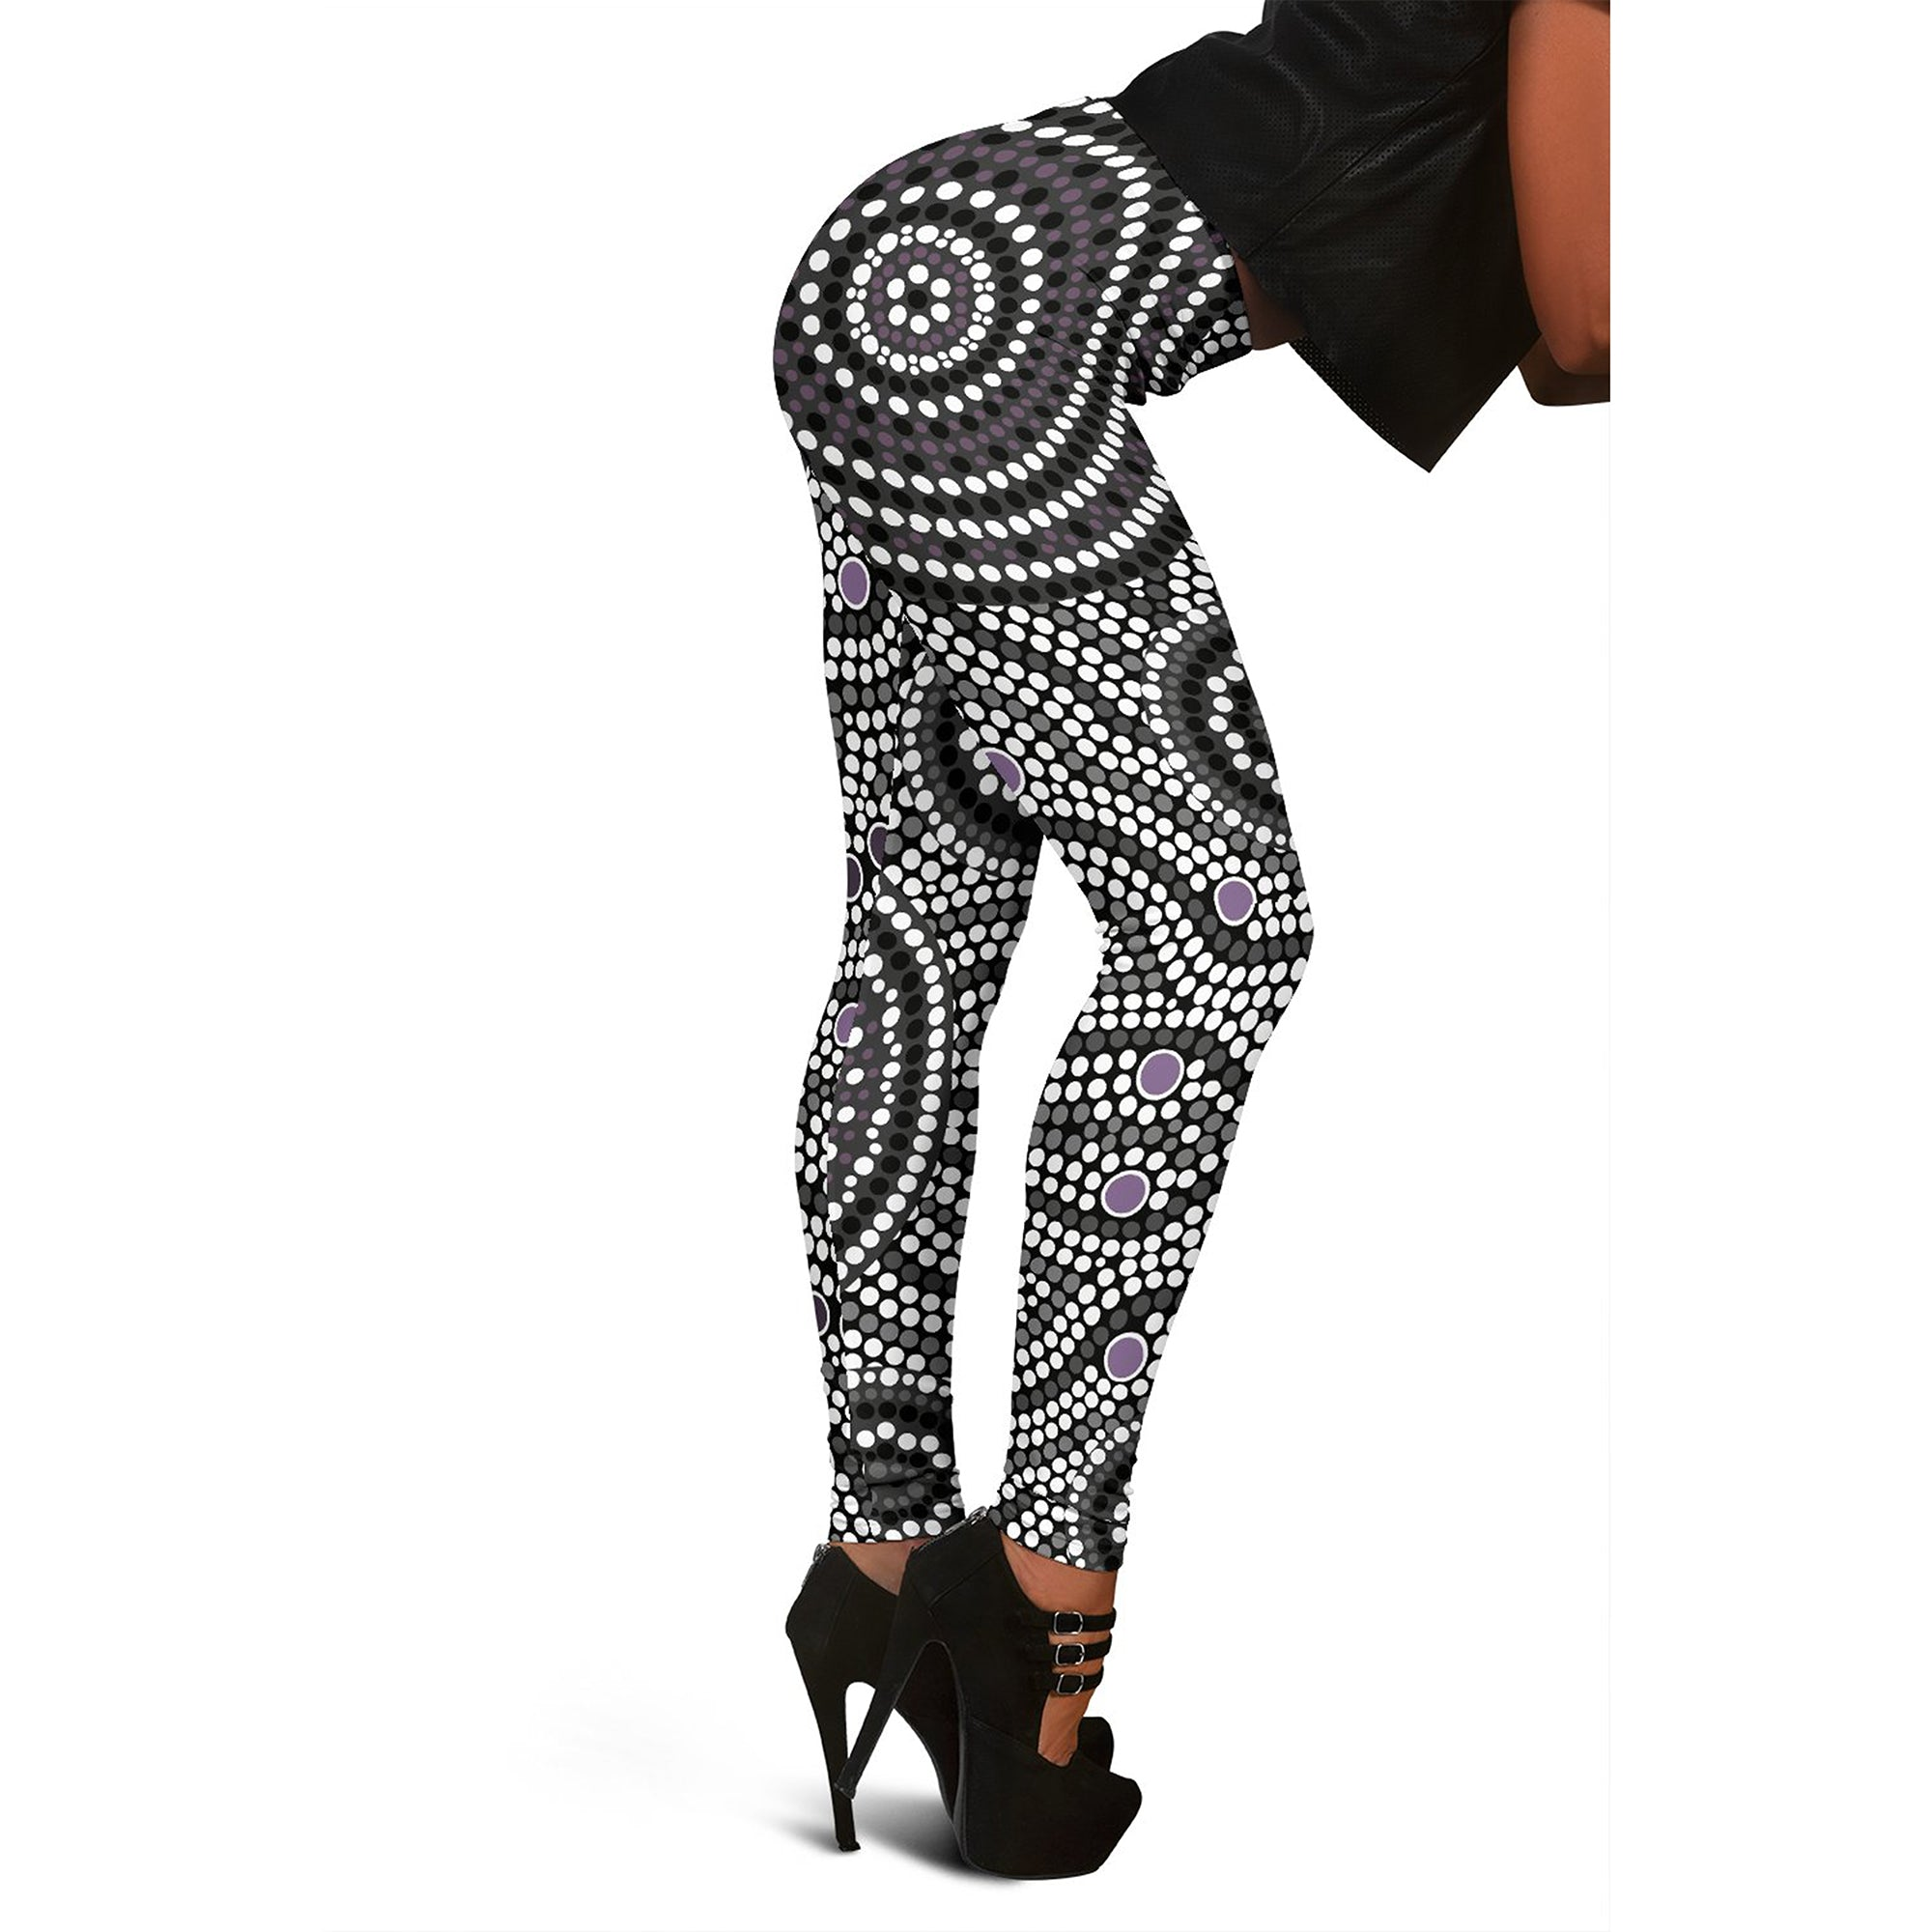 Australia Aboriginal Leggings 04